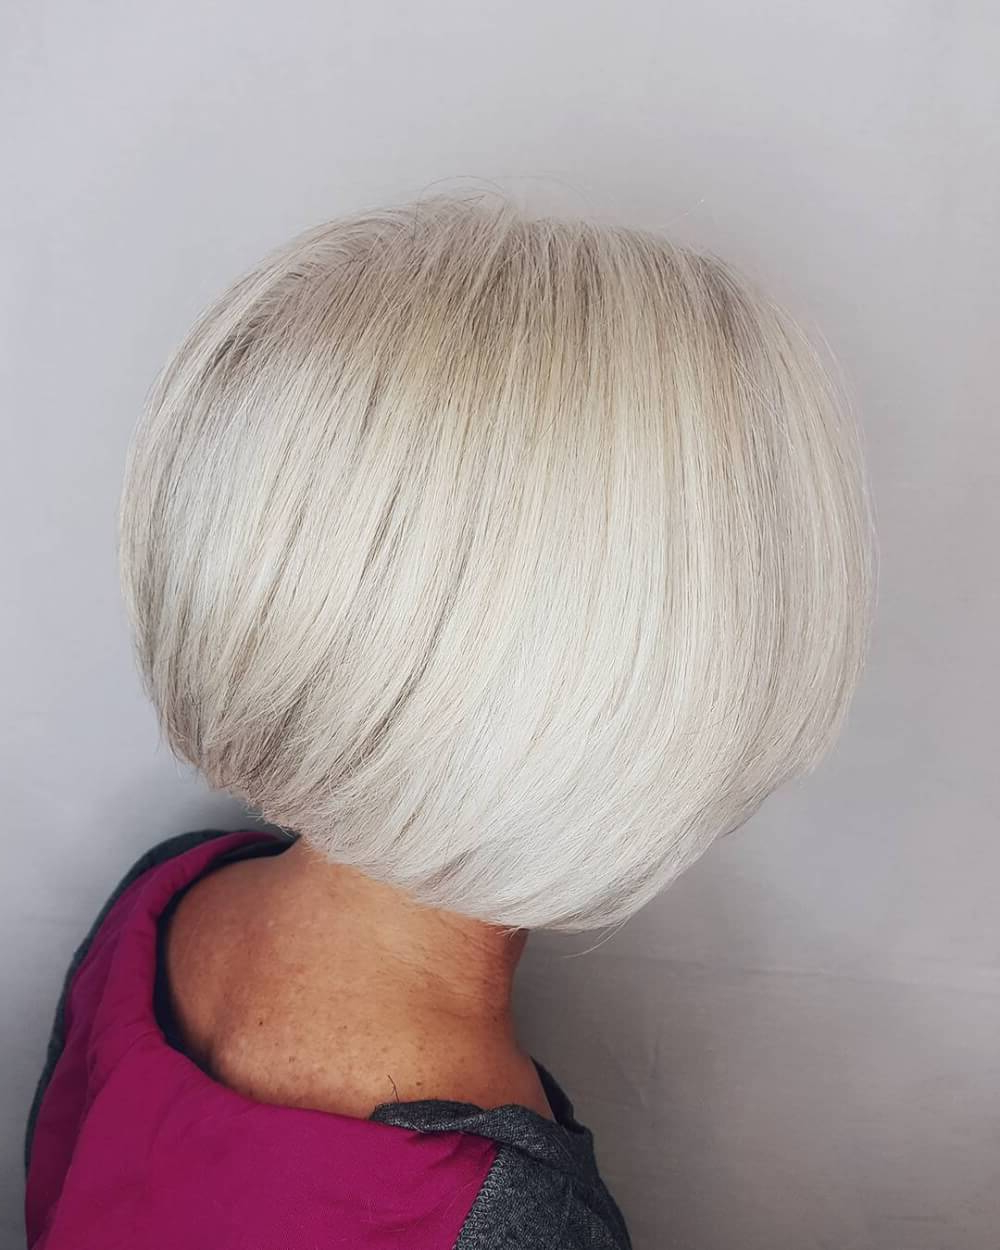 49 Chic Short Bob Hairstyles & Haircuts For Women In 2018 Intended For High Shine Sleek Silver Pixie Bob Haircuts (View 8 of 20)